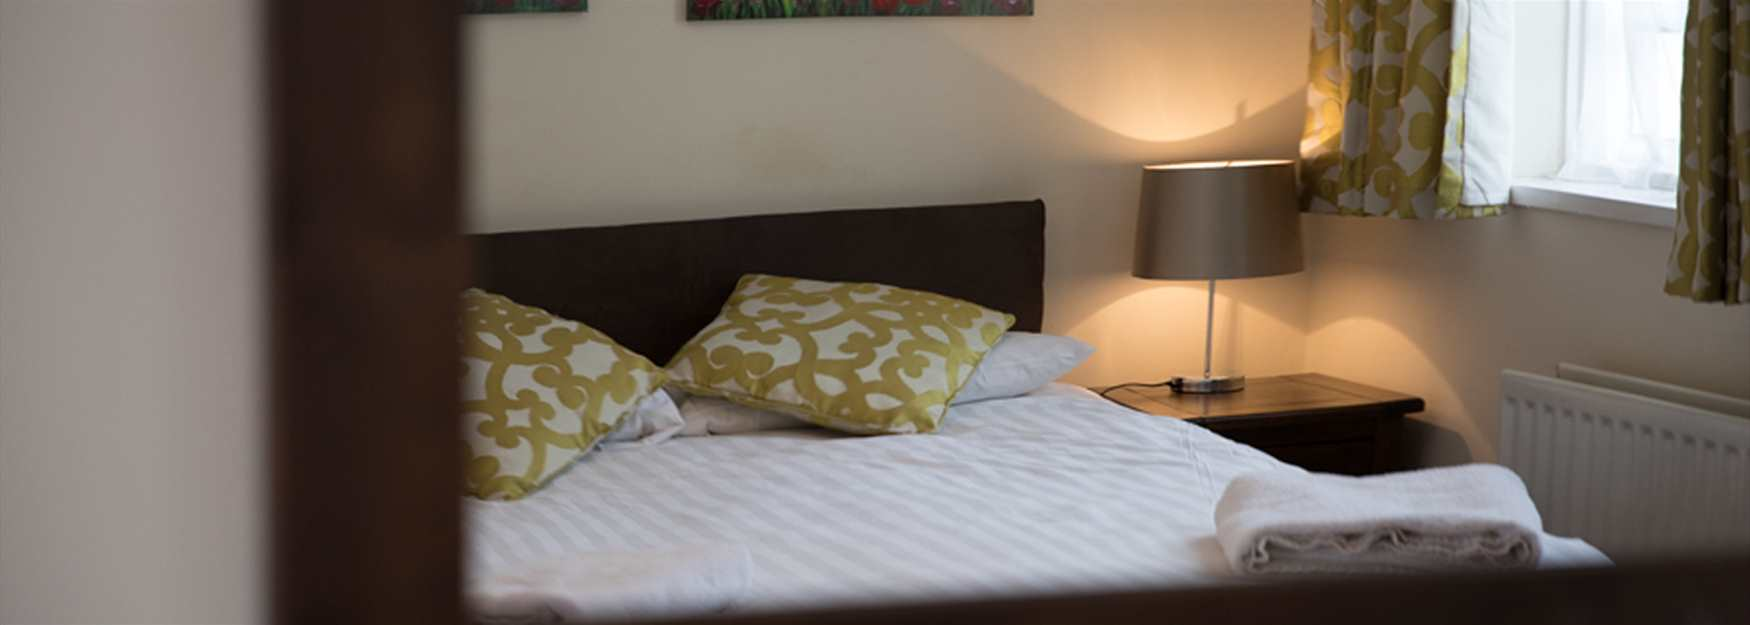 Group Accommodation in Durham